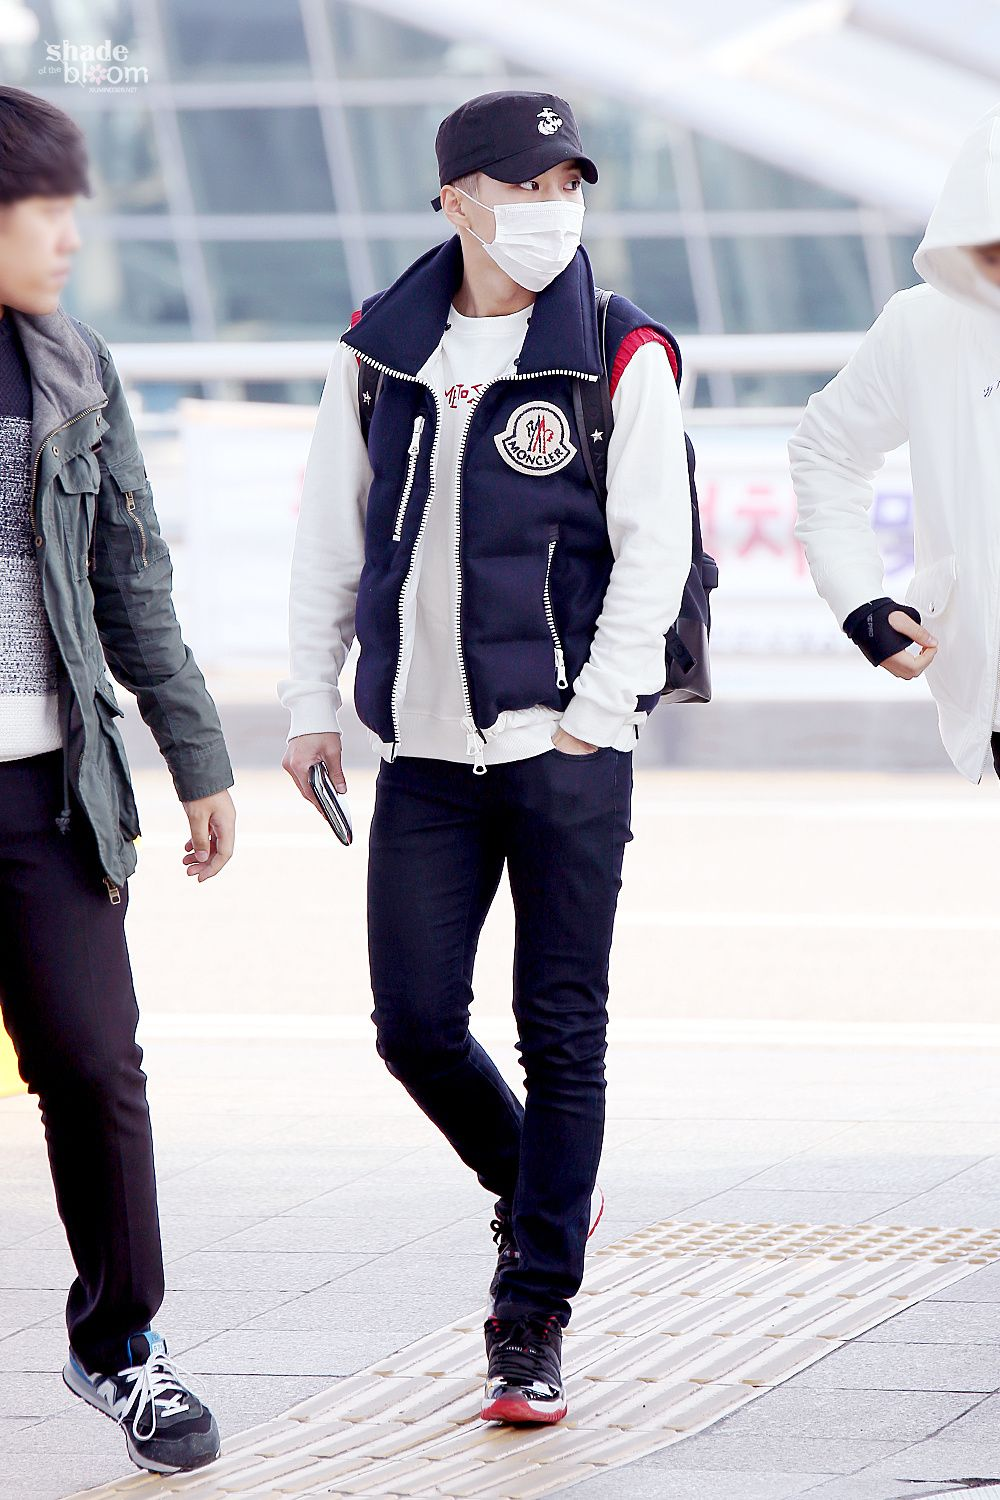 151120: EXO Xiumin (Kim Minseok); Incheon Airport to Macau ...